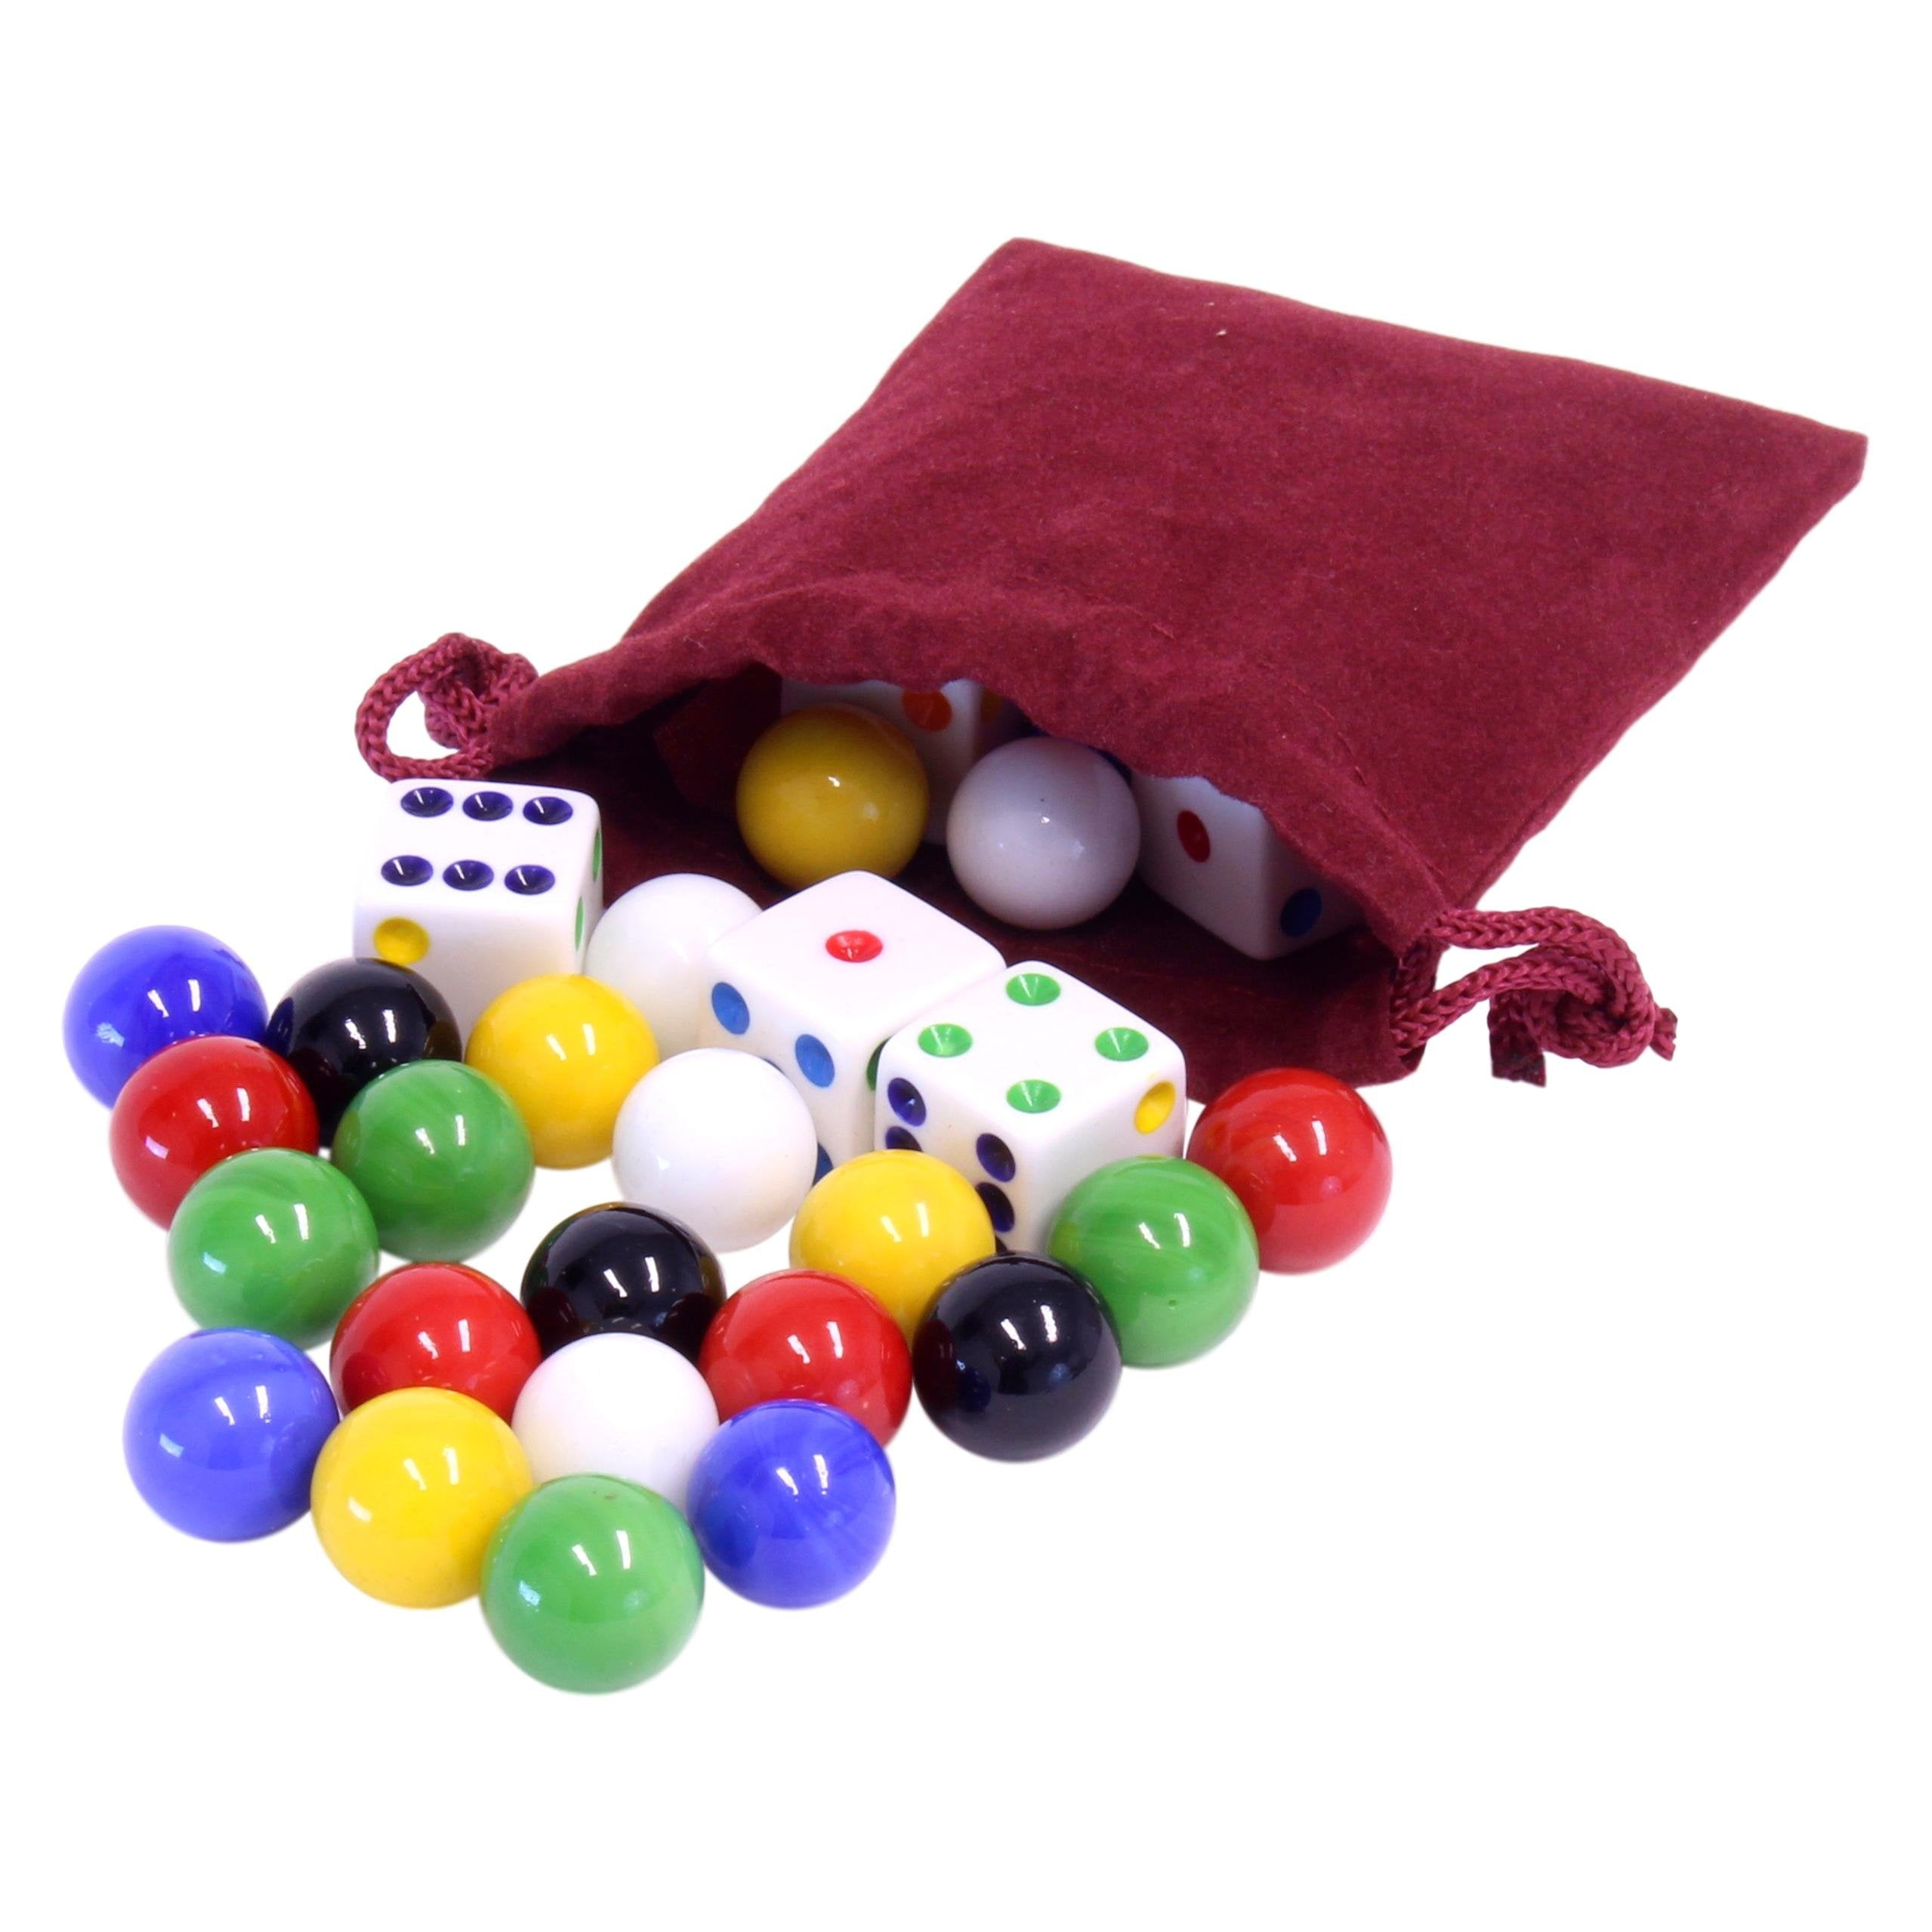 Game Bag of 24 Glass Marbles (14mm) and 6 Dice for Aggravation Game